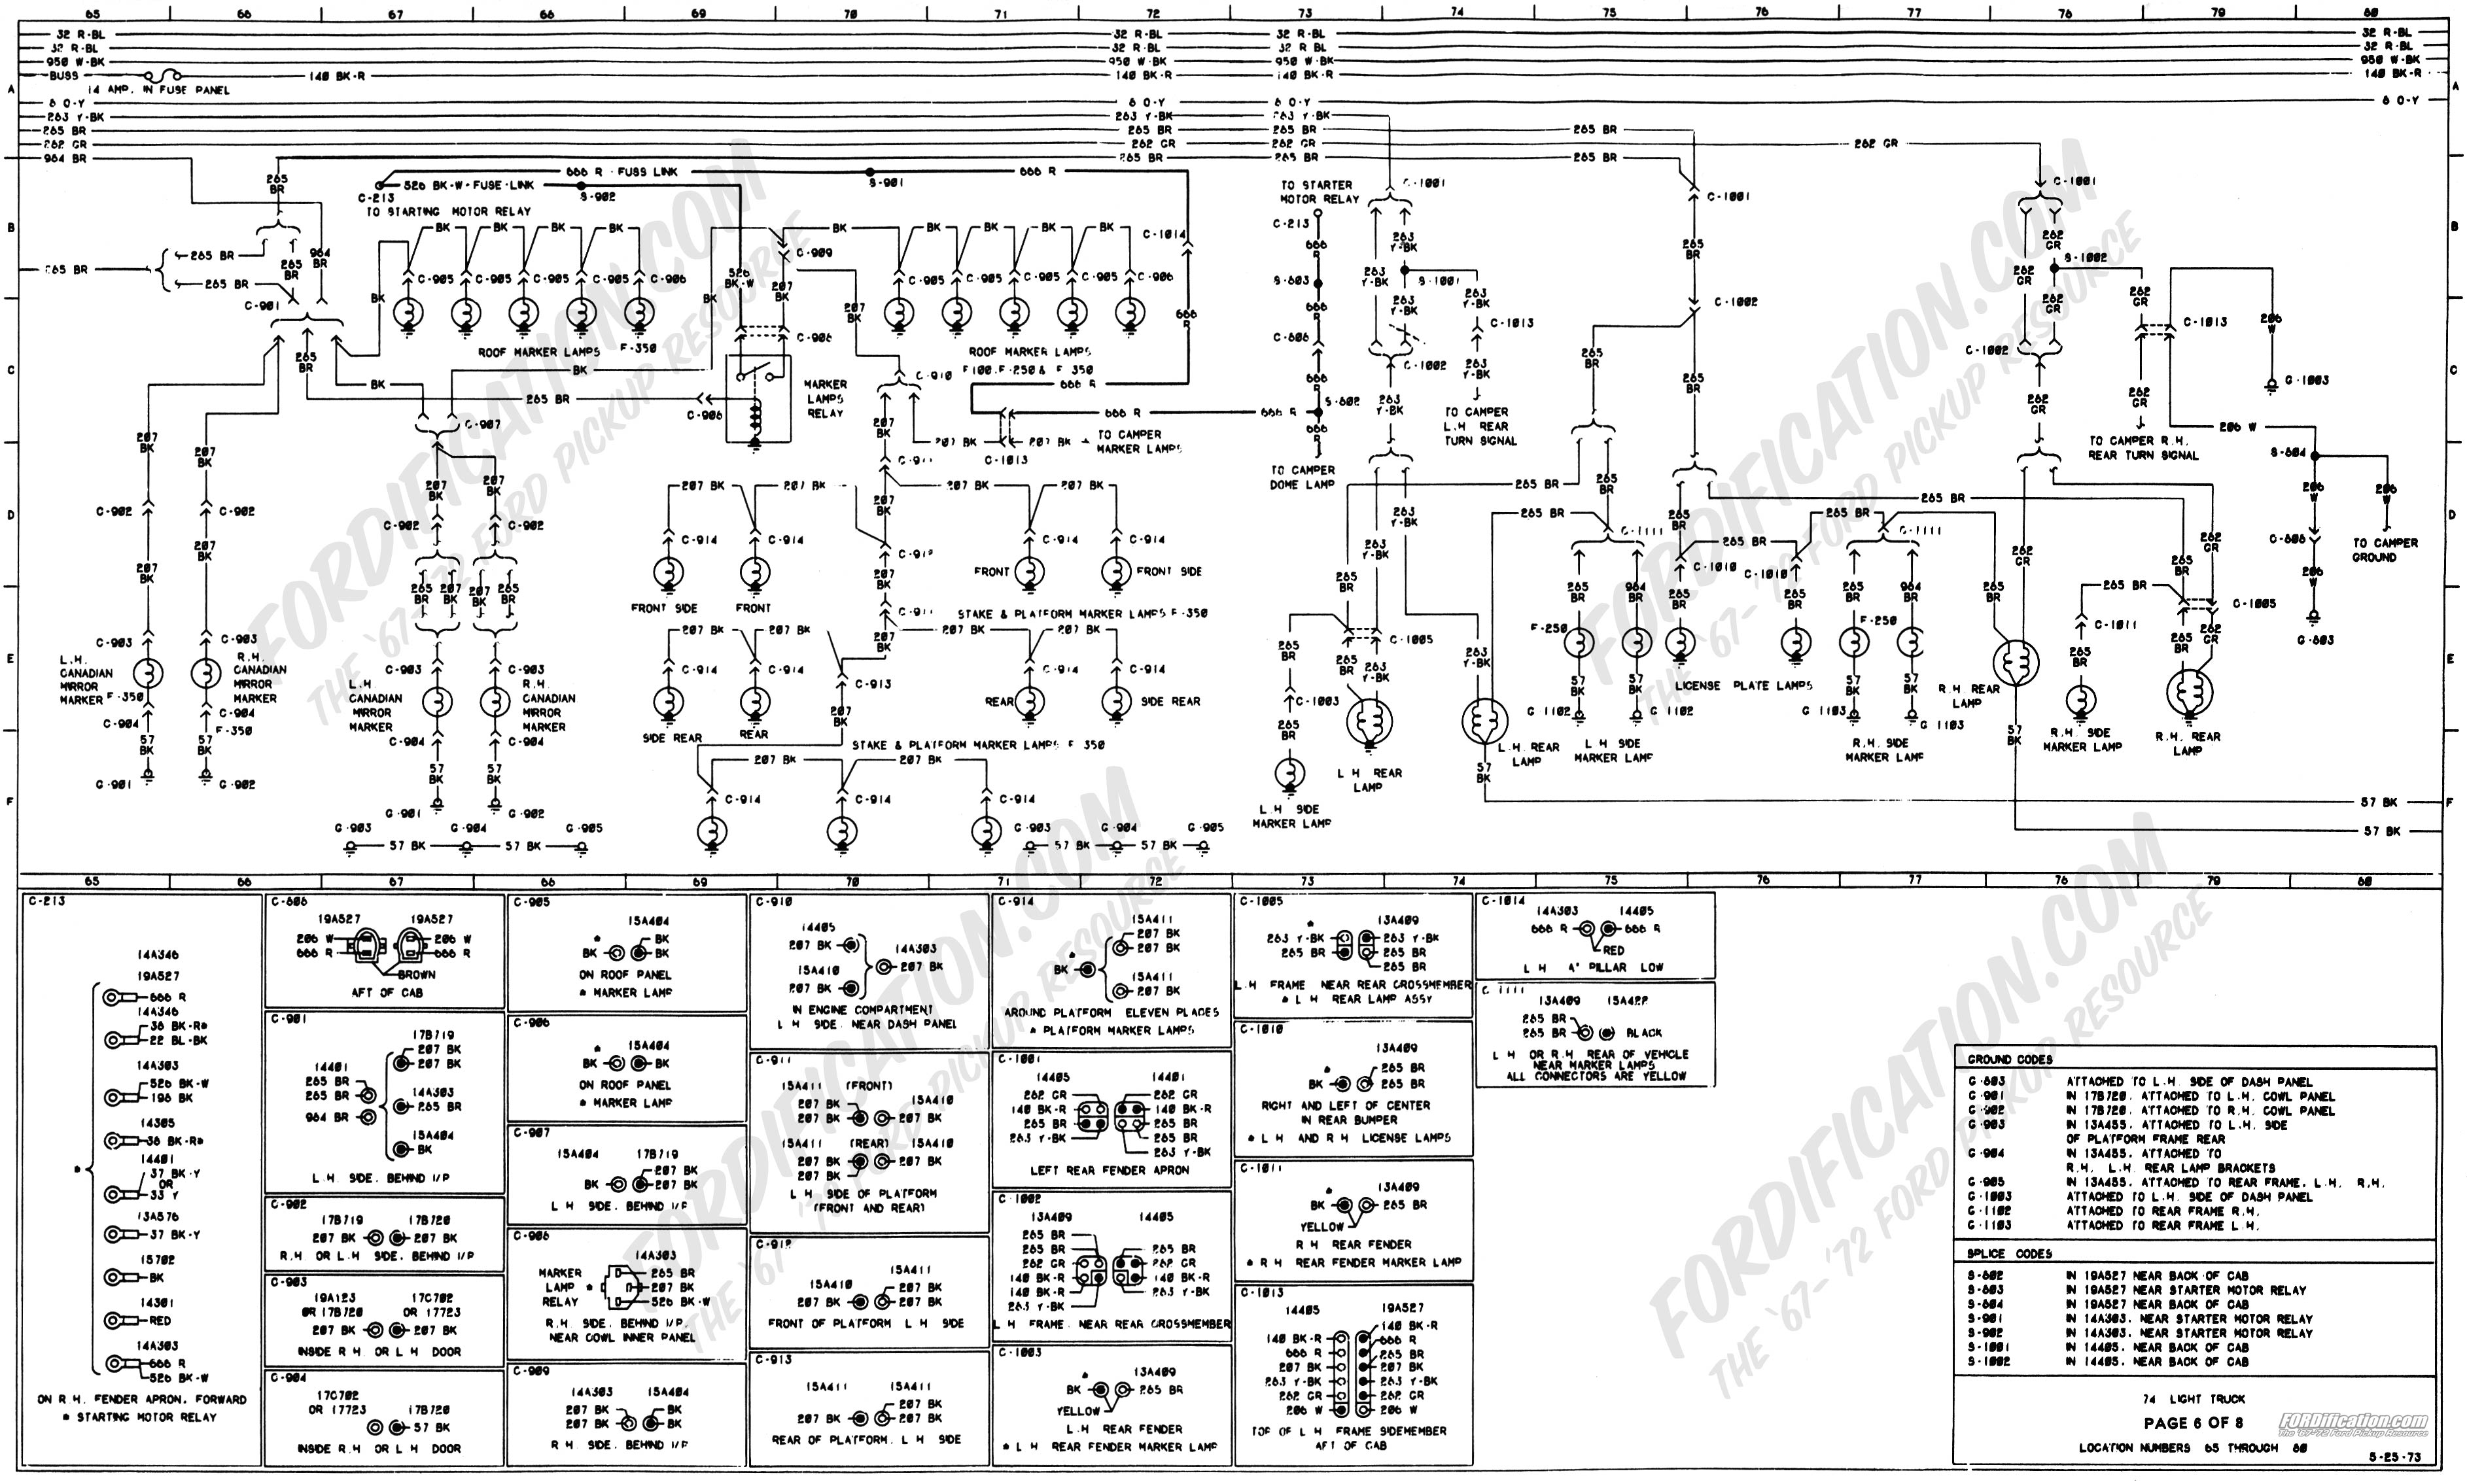 wiring_74master_6of8 1983 ford f150 wiring diagram f150 alternator wiring diagram 1973 mustang wiring diagram at gsmx.co